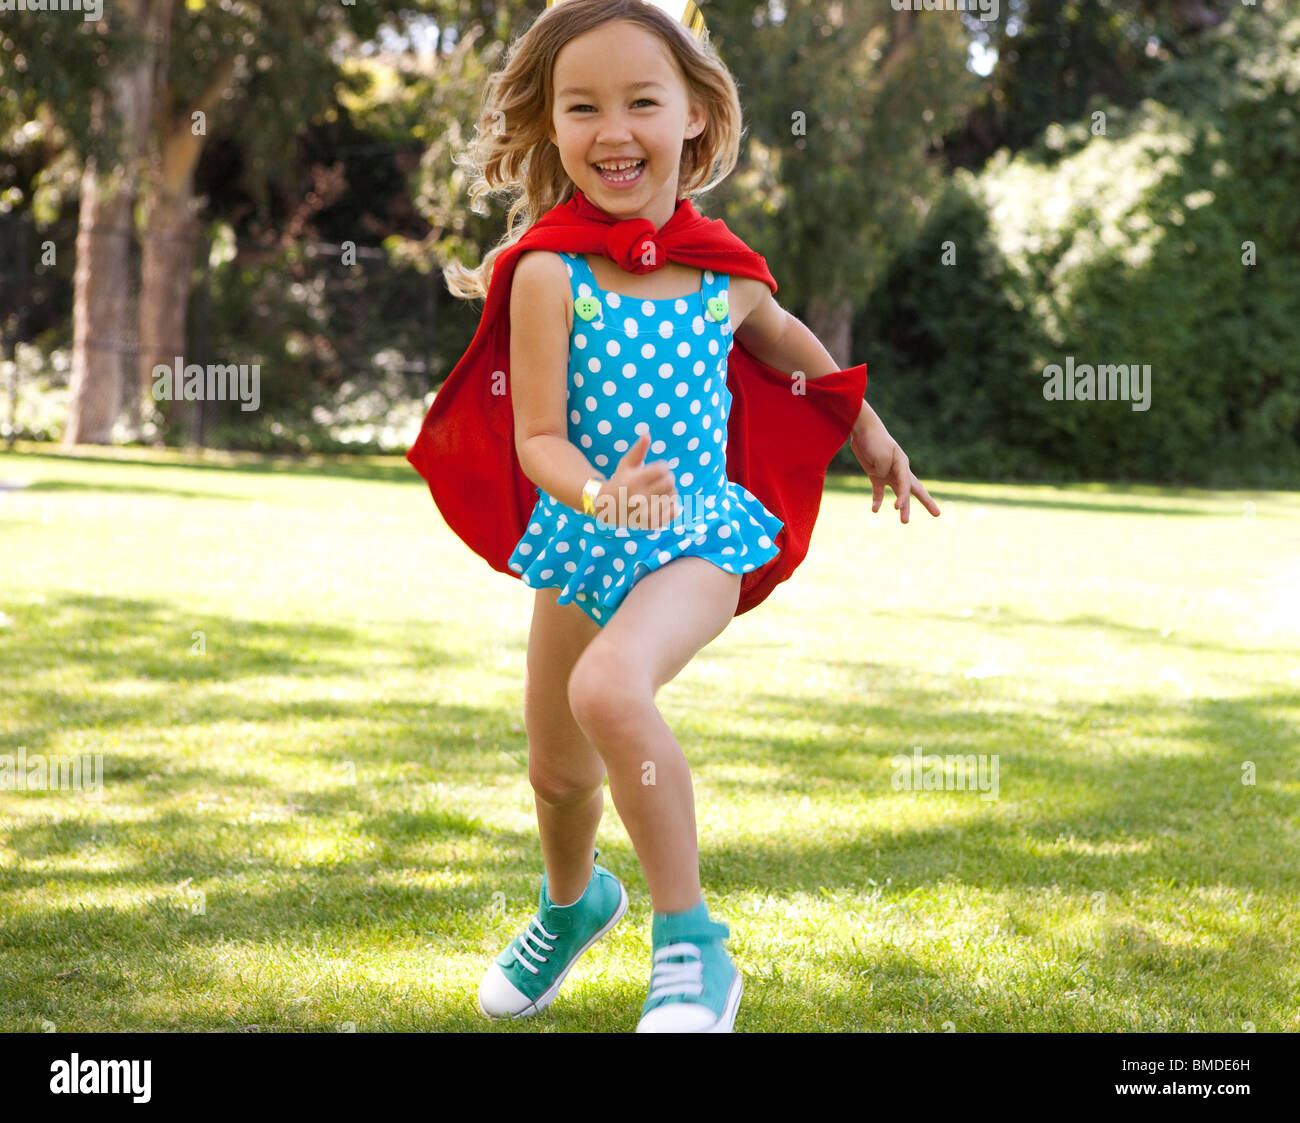 Girl in polka dot bathing suit and red cape running - Stock Image